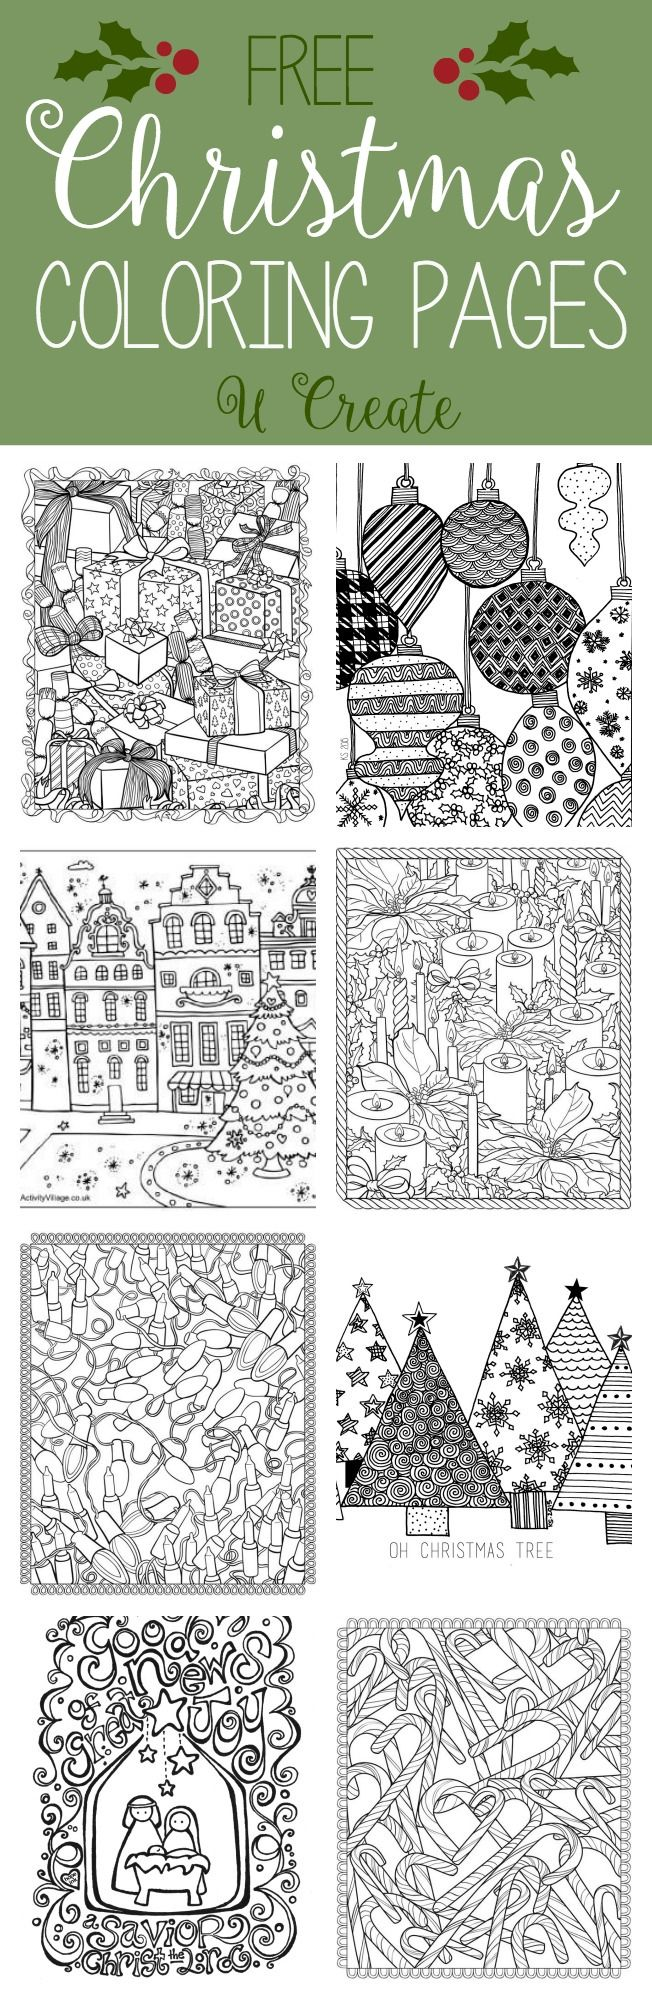 Free Christmas Adult Coloring Pages (U Create) | Adult coloring ...